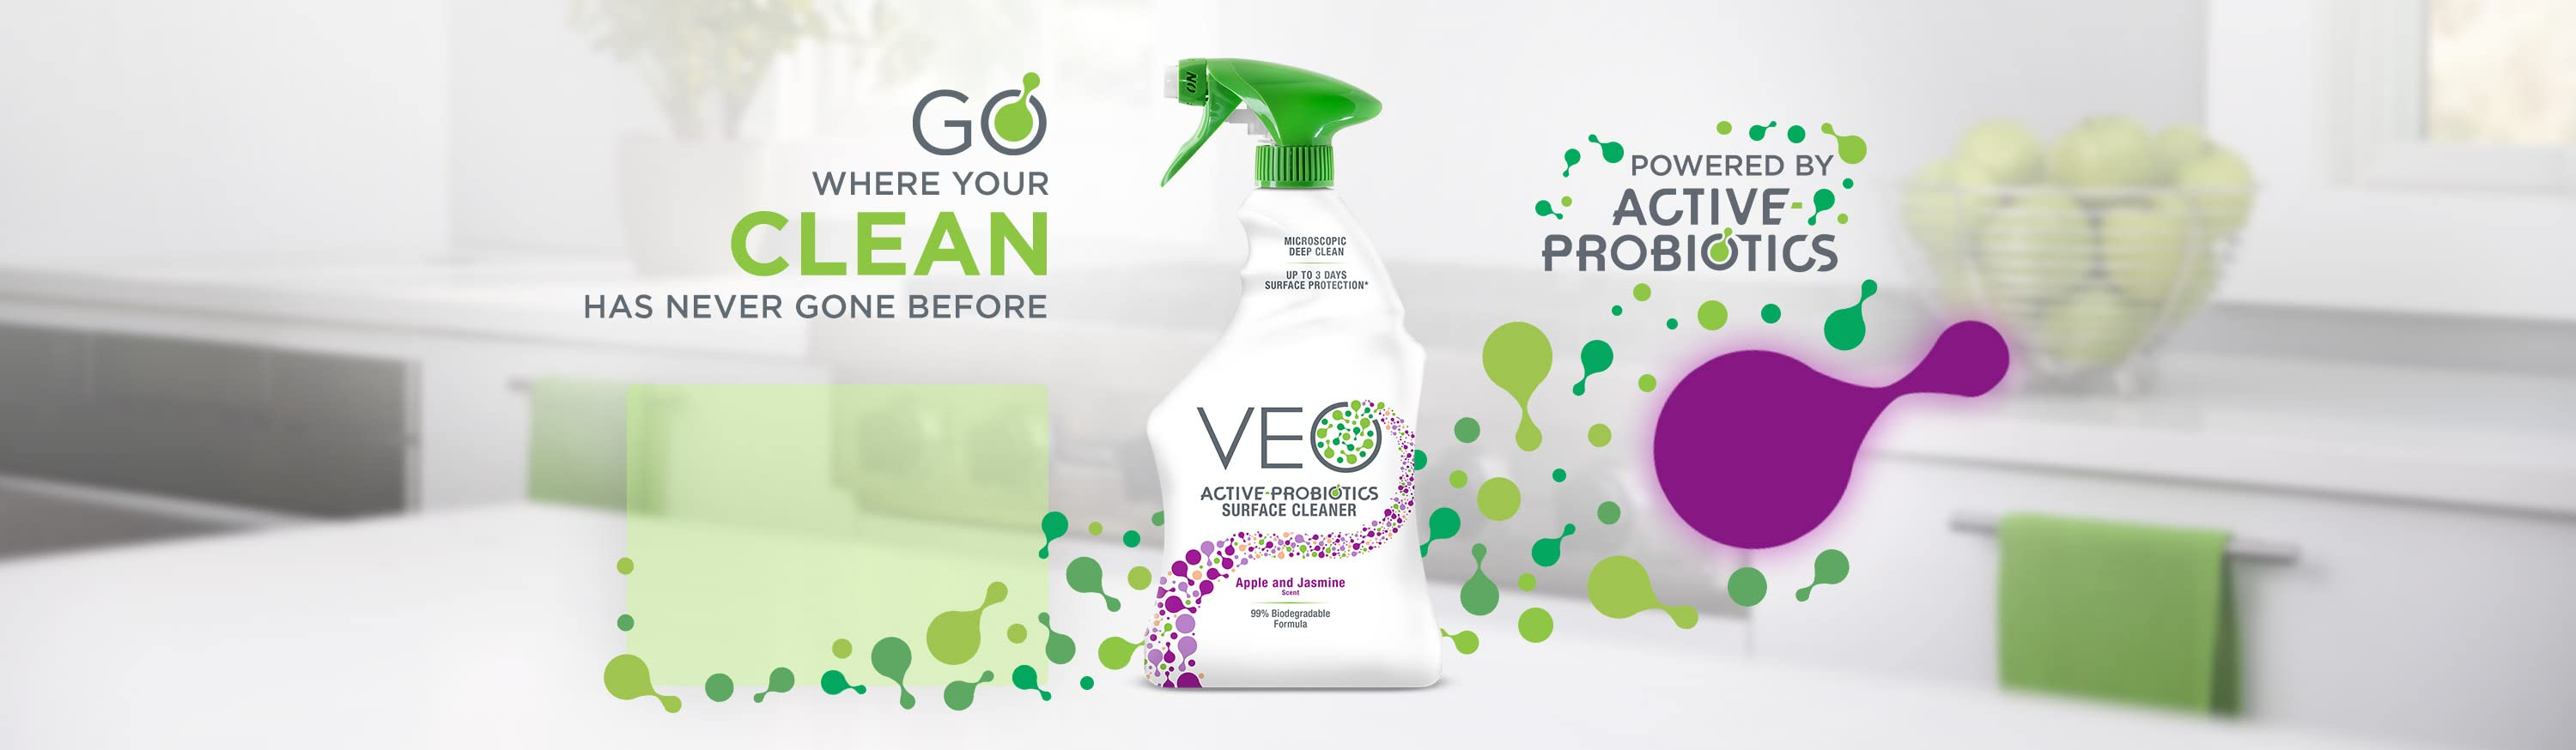 Go where your clean has never gone before. Powered by active probiotics.